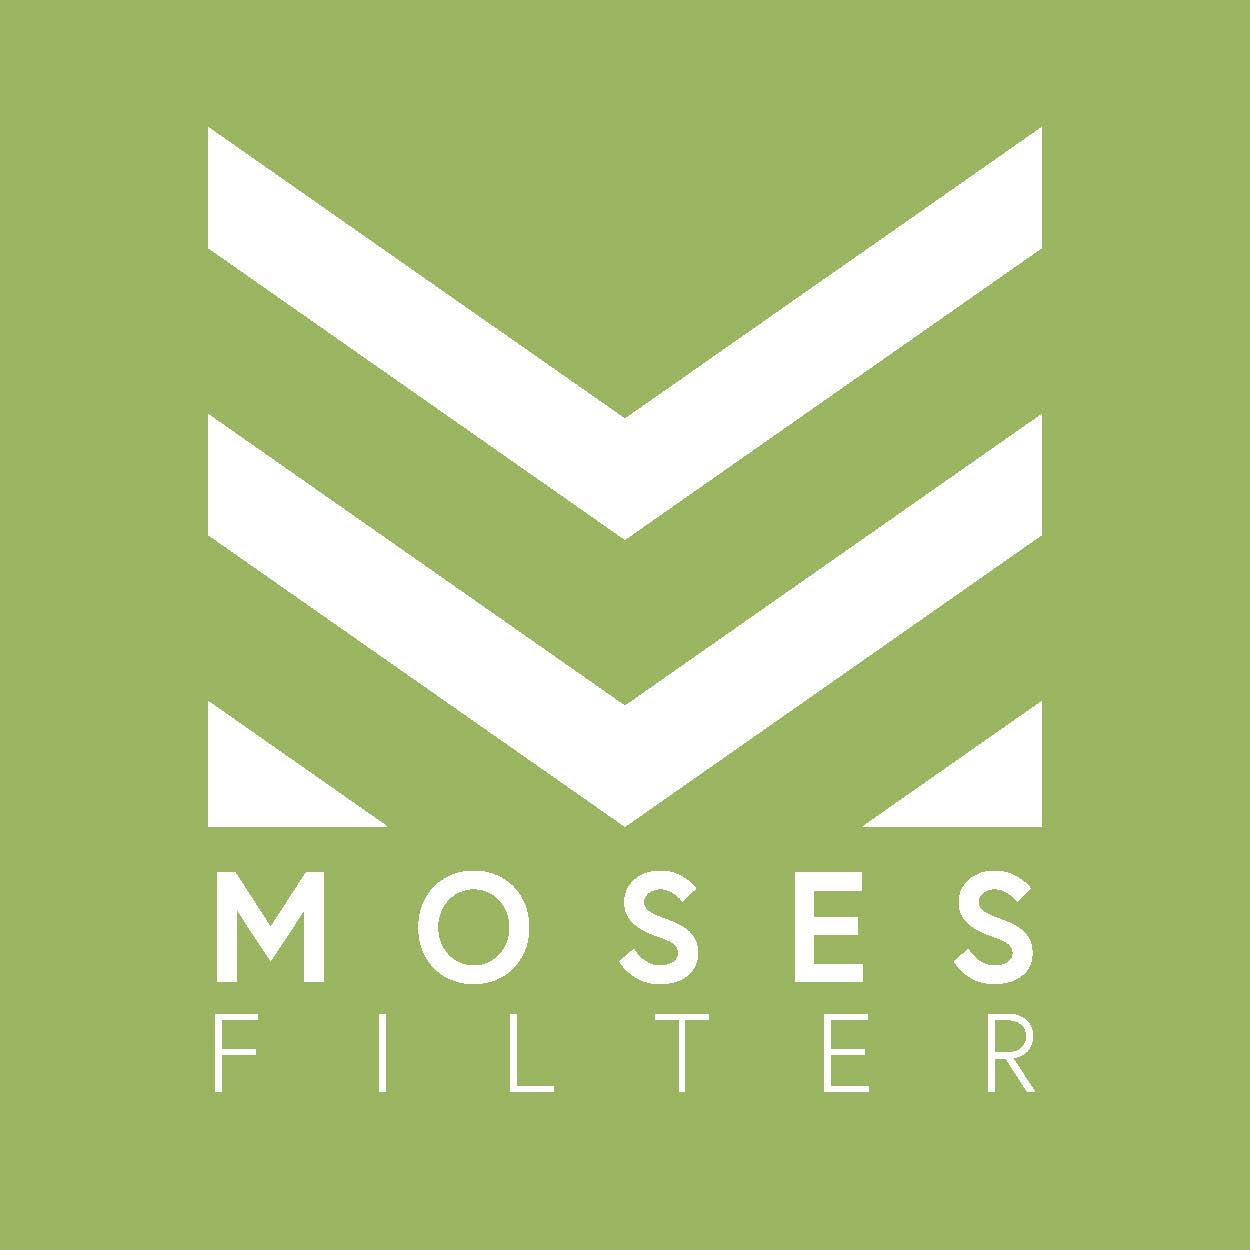 Moses Filter